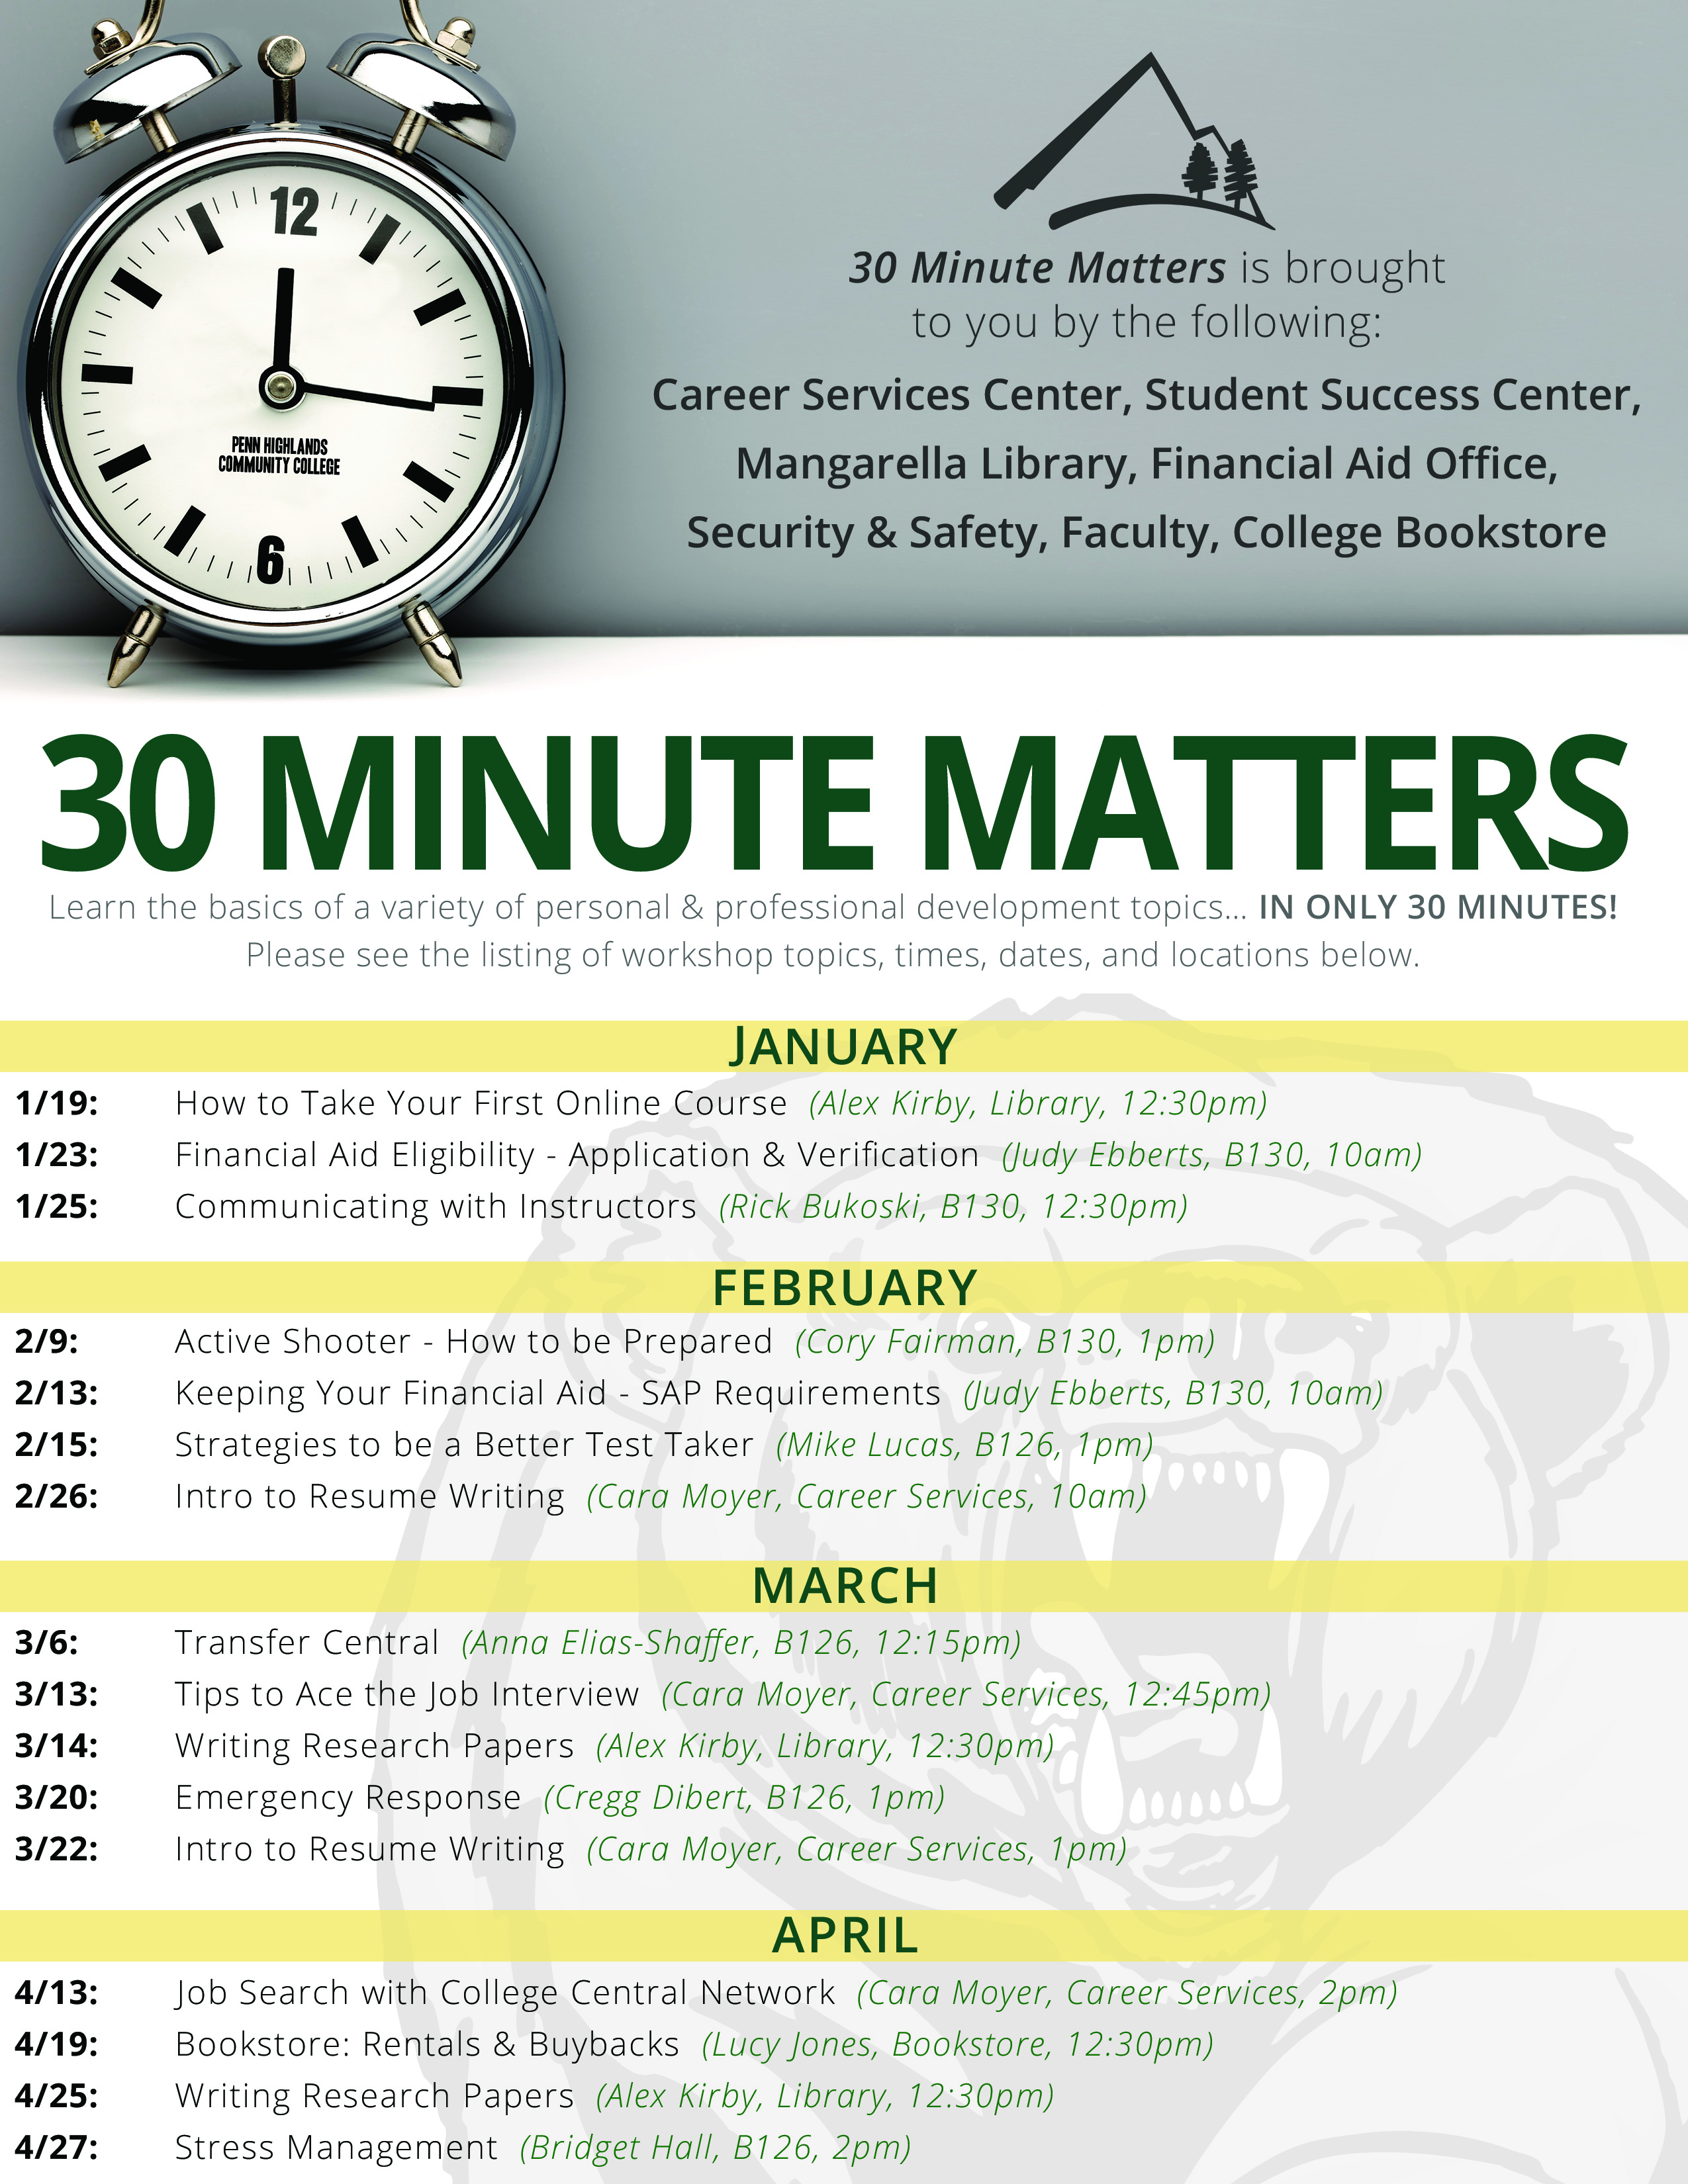 30 Minute Matters Spring 2018 Flyer